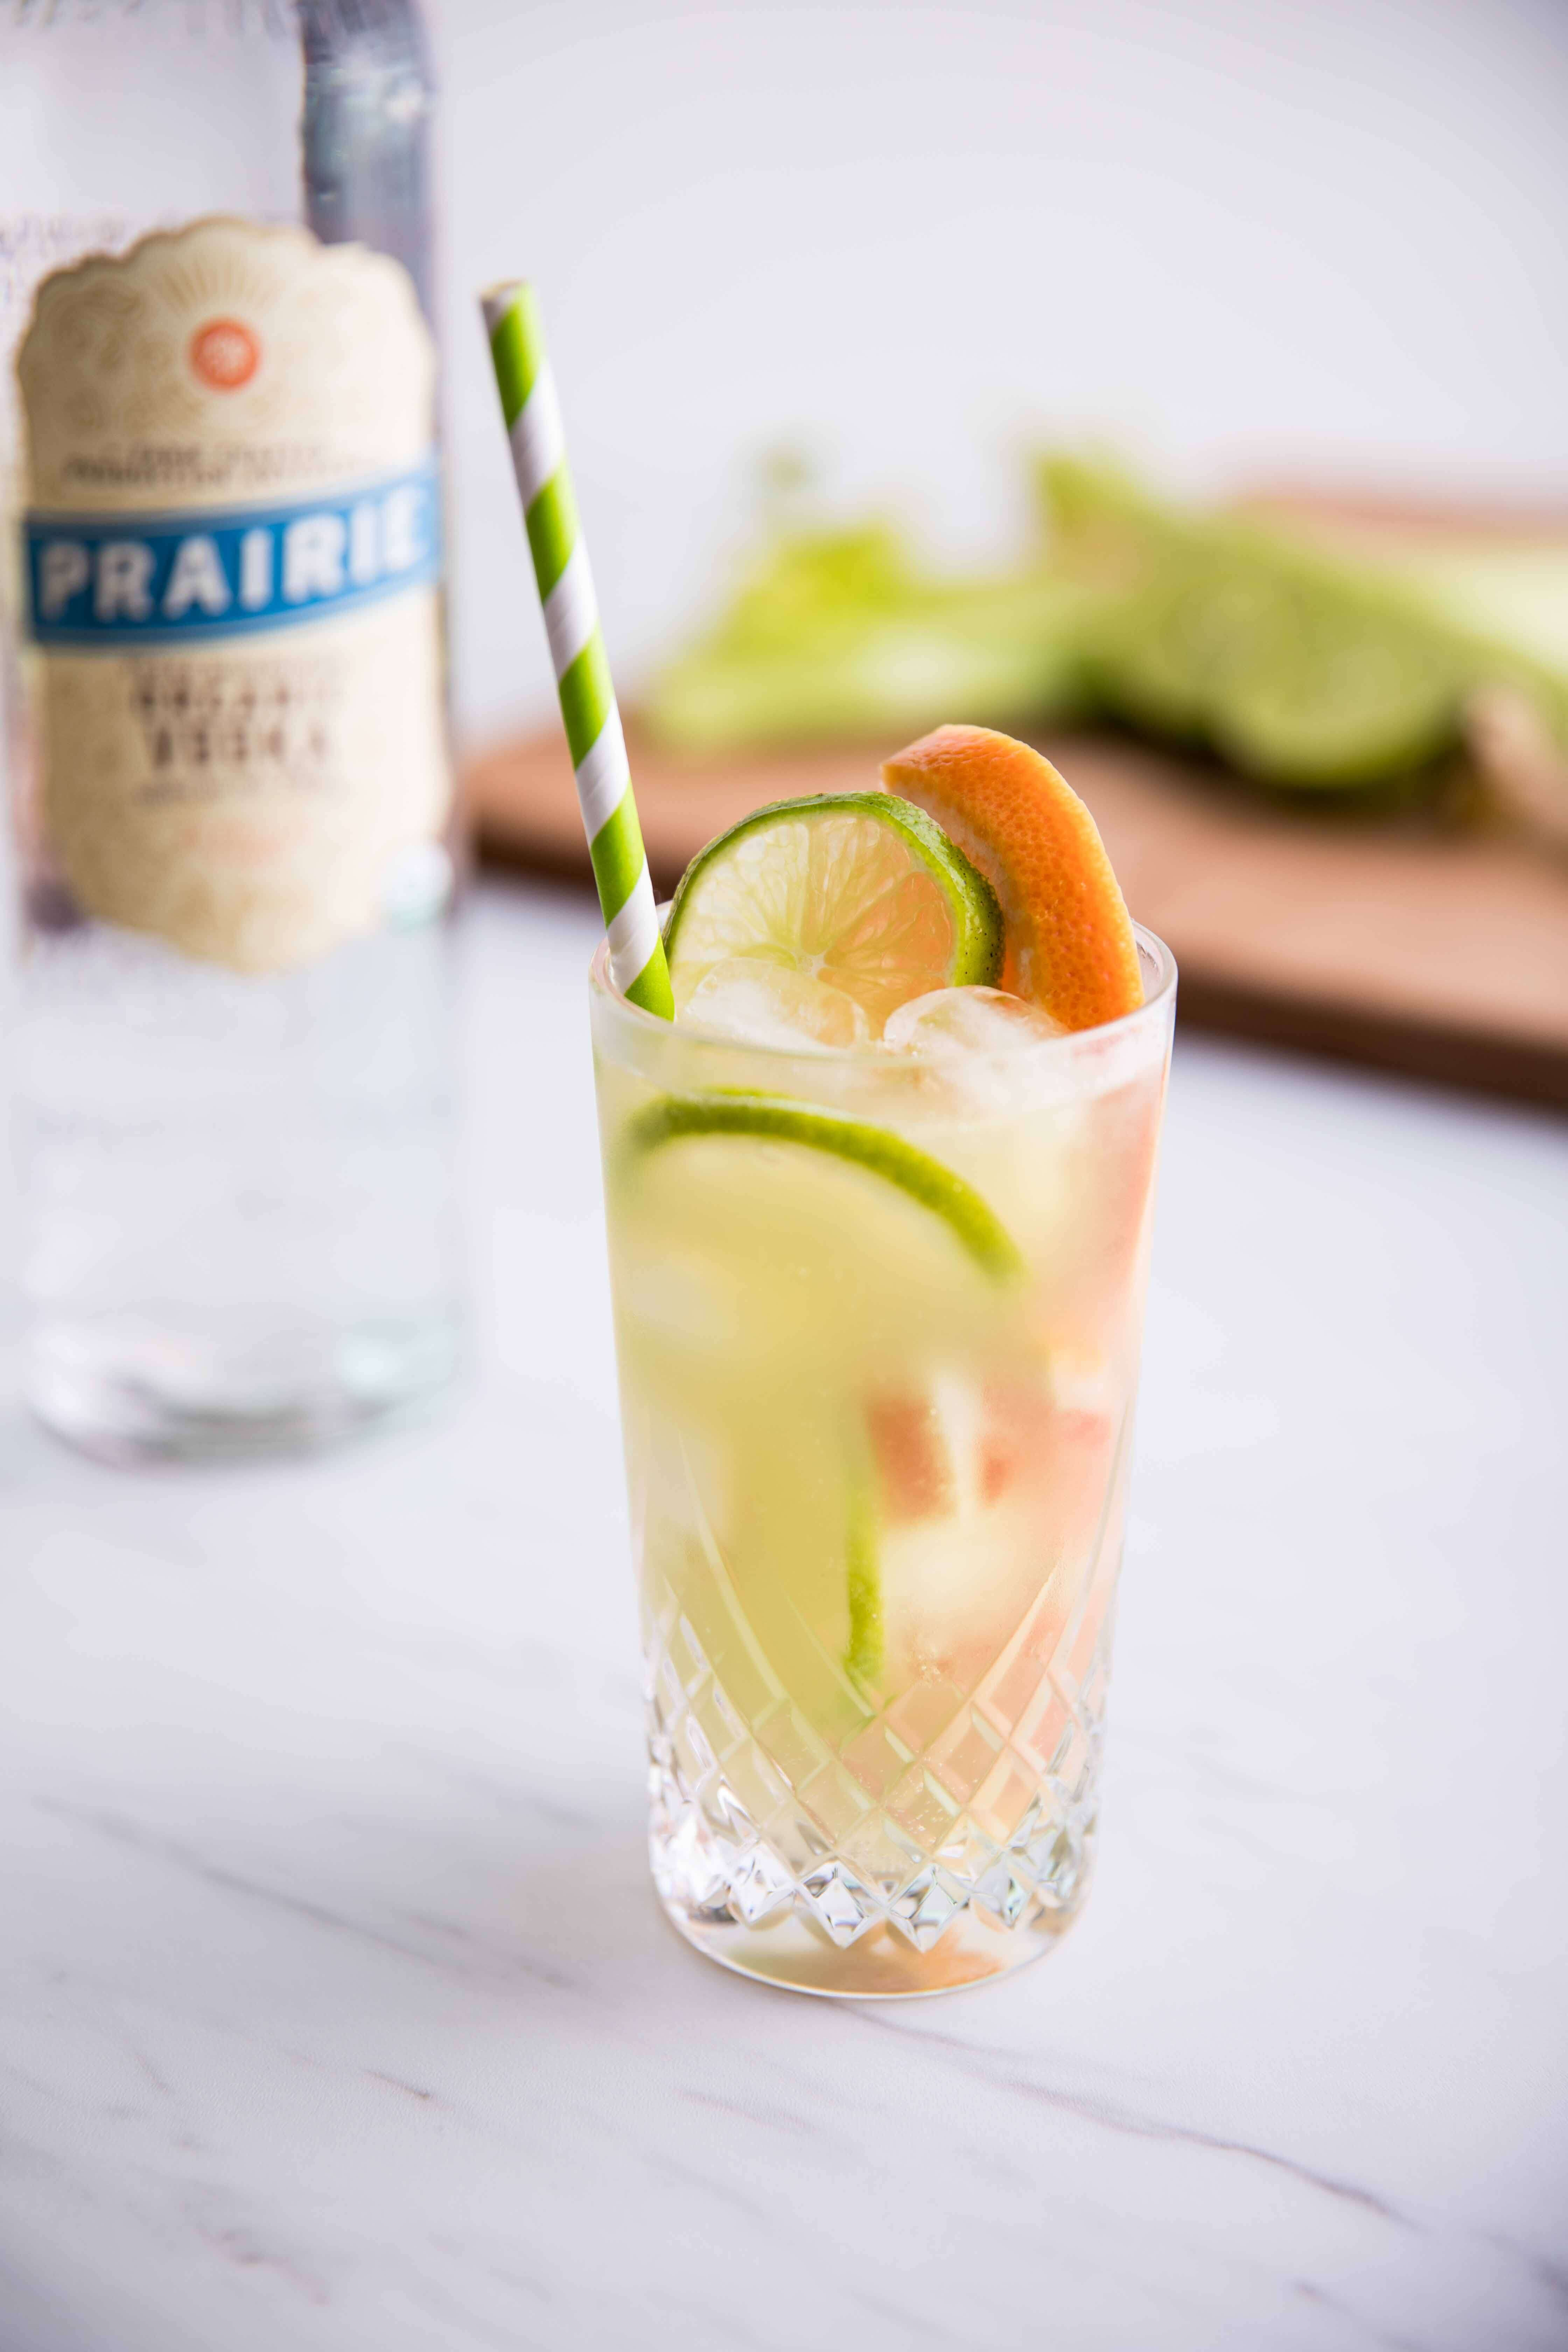 Luck of the Celery – Celery and Grapefruit Cocktail made with Prairie Organic Vodka